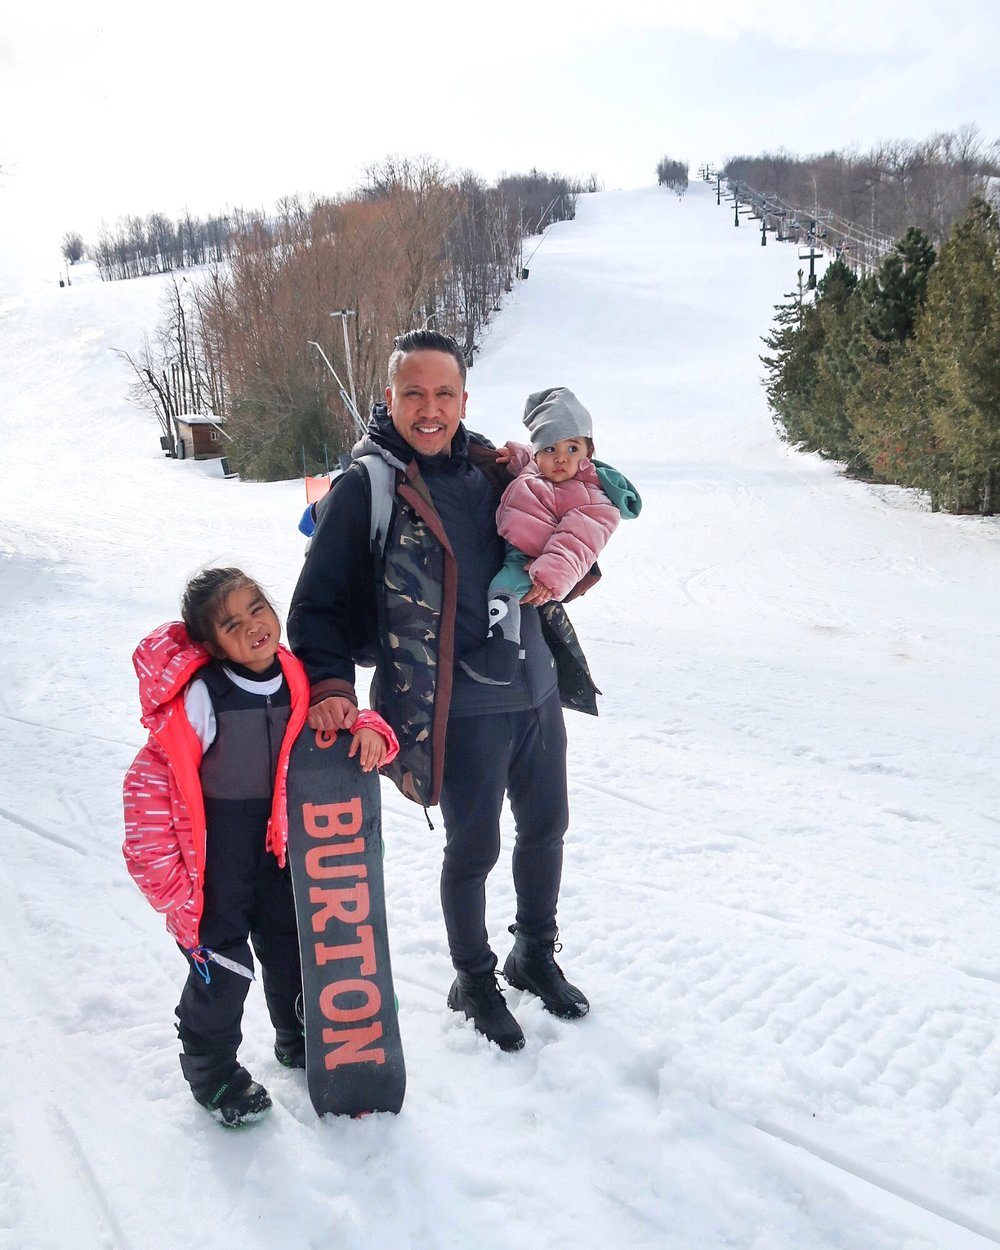 Family fun on the slopes!